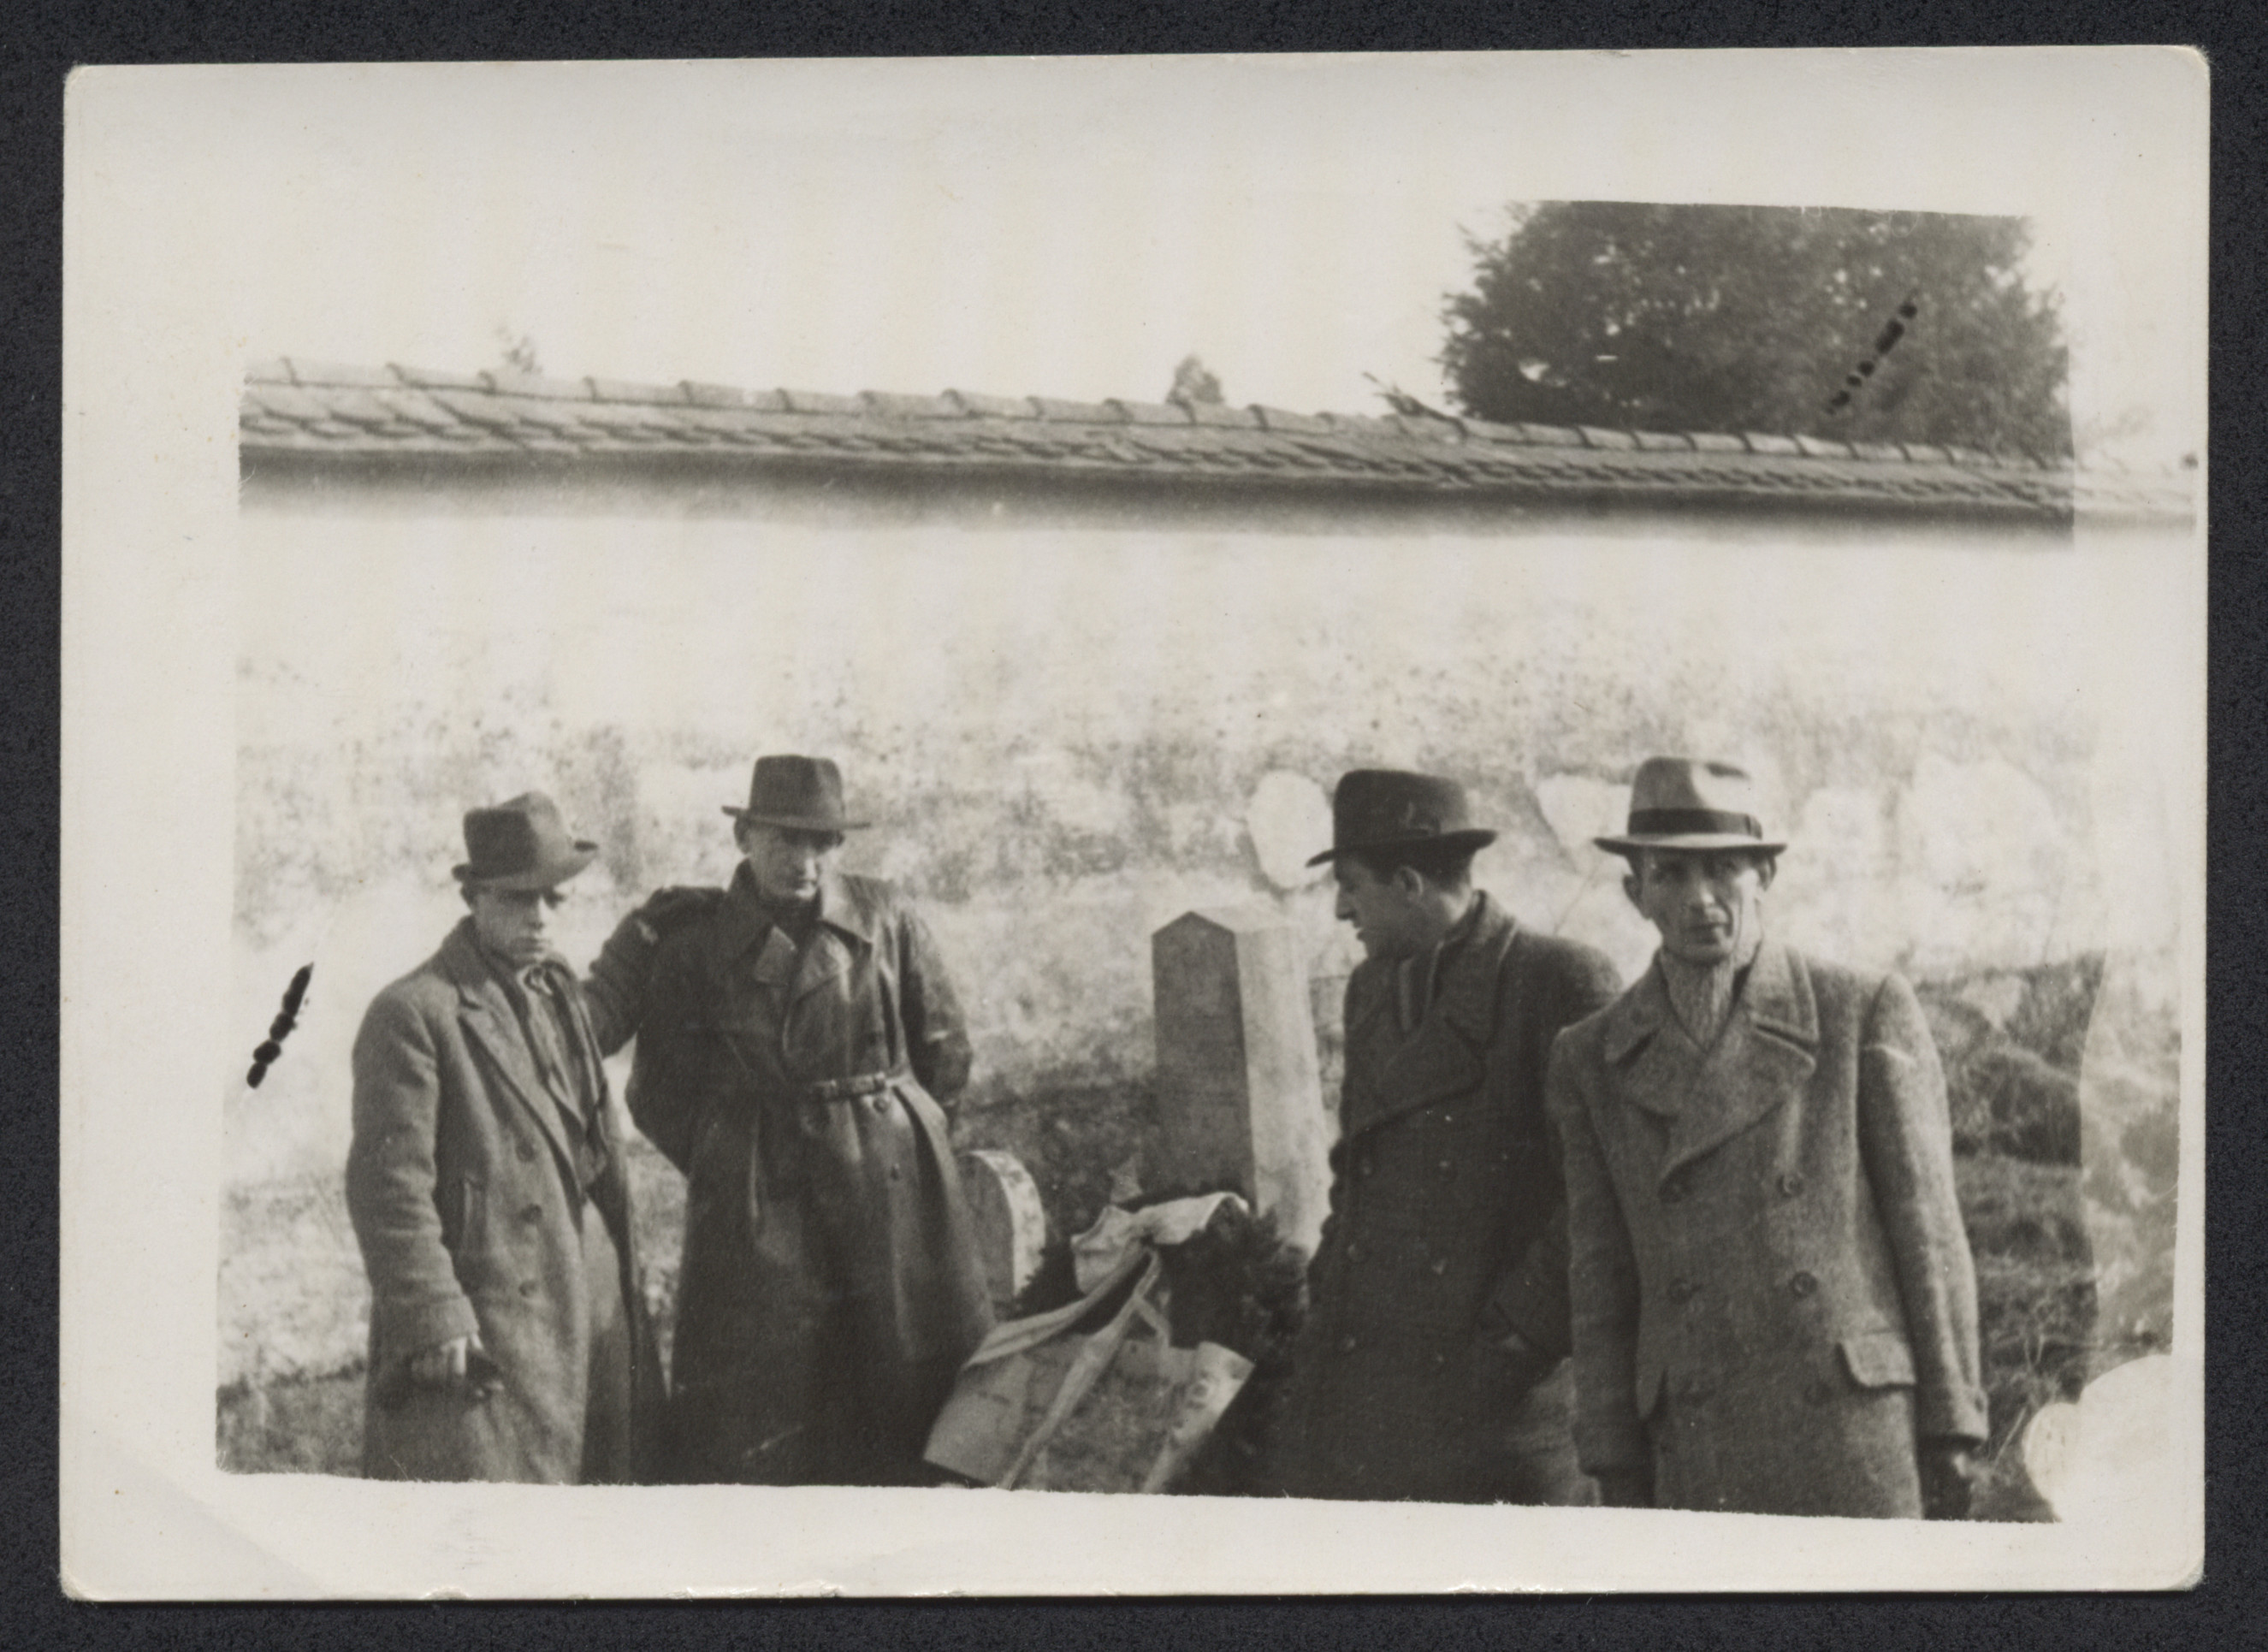 Jewish displaced persons rebury exhumed corpses in a cemetery at Mauthausen one year after the liberation of the camp.